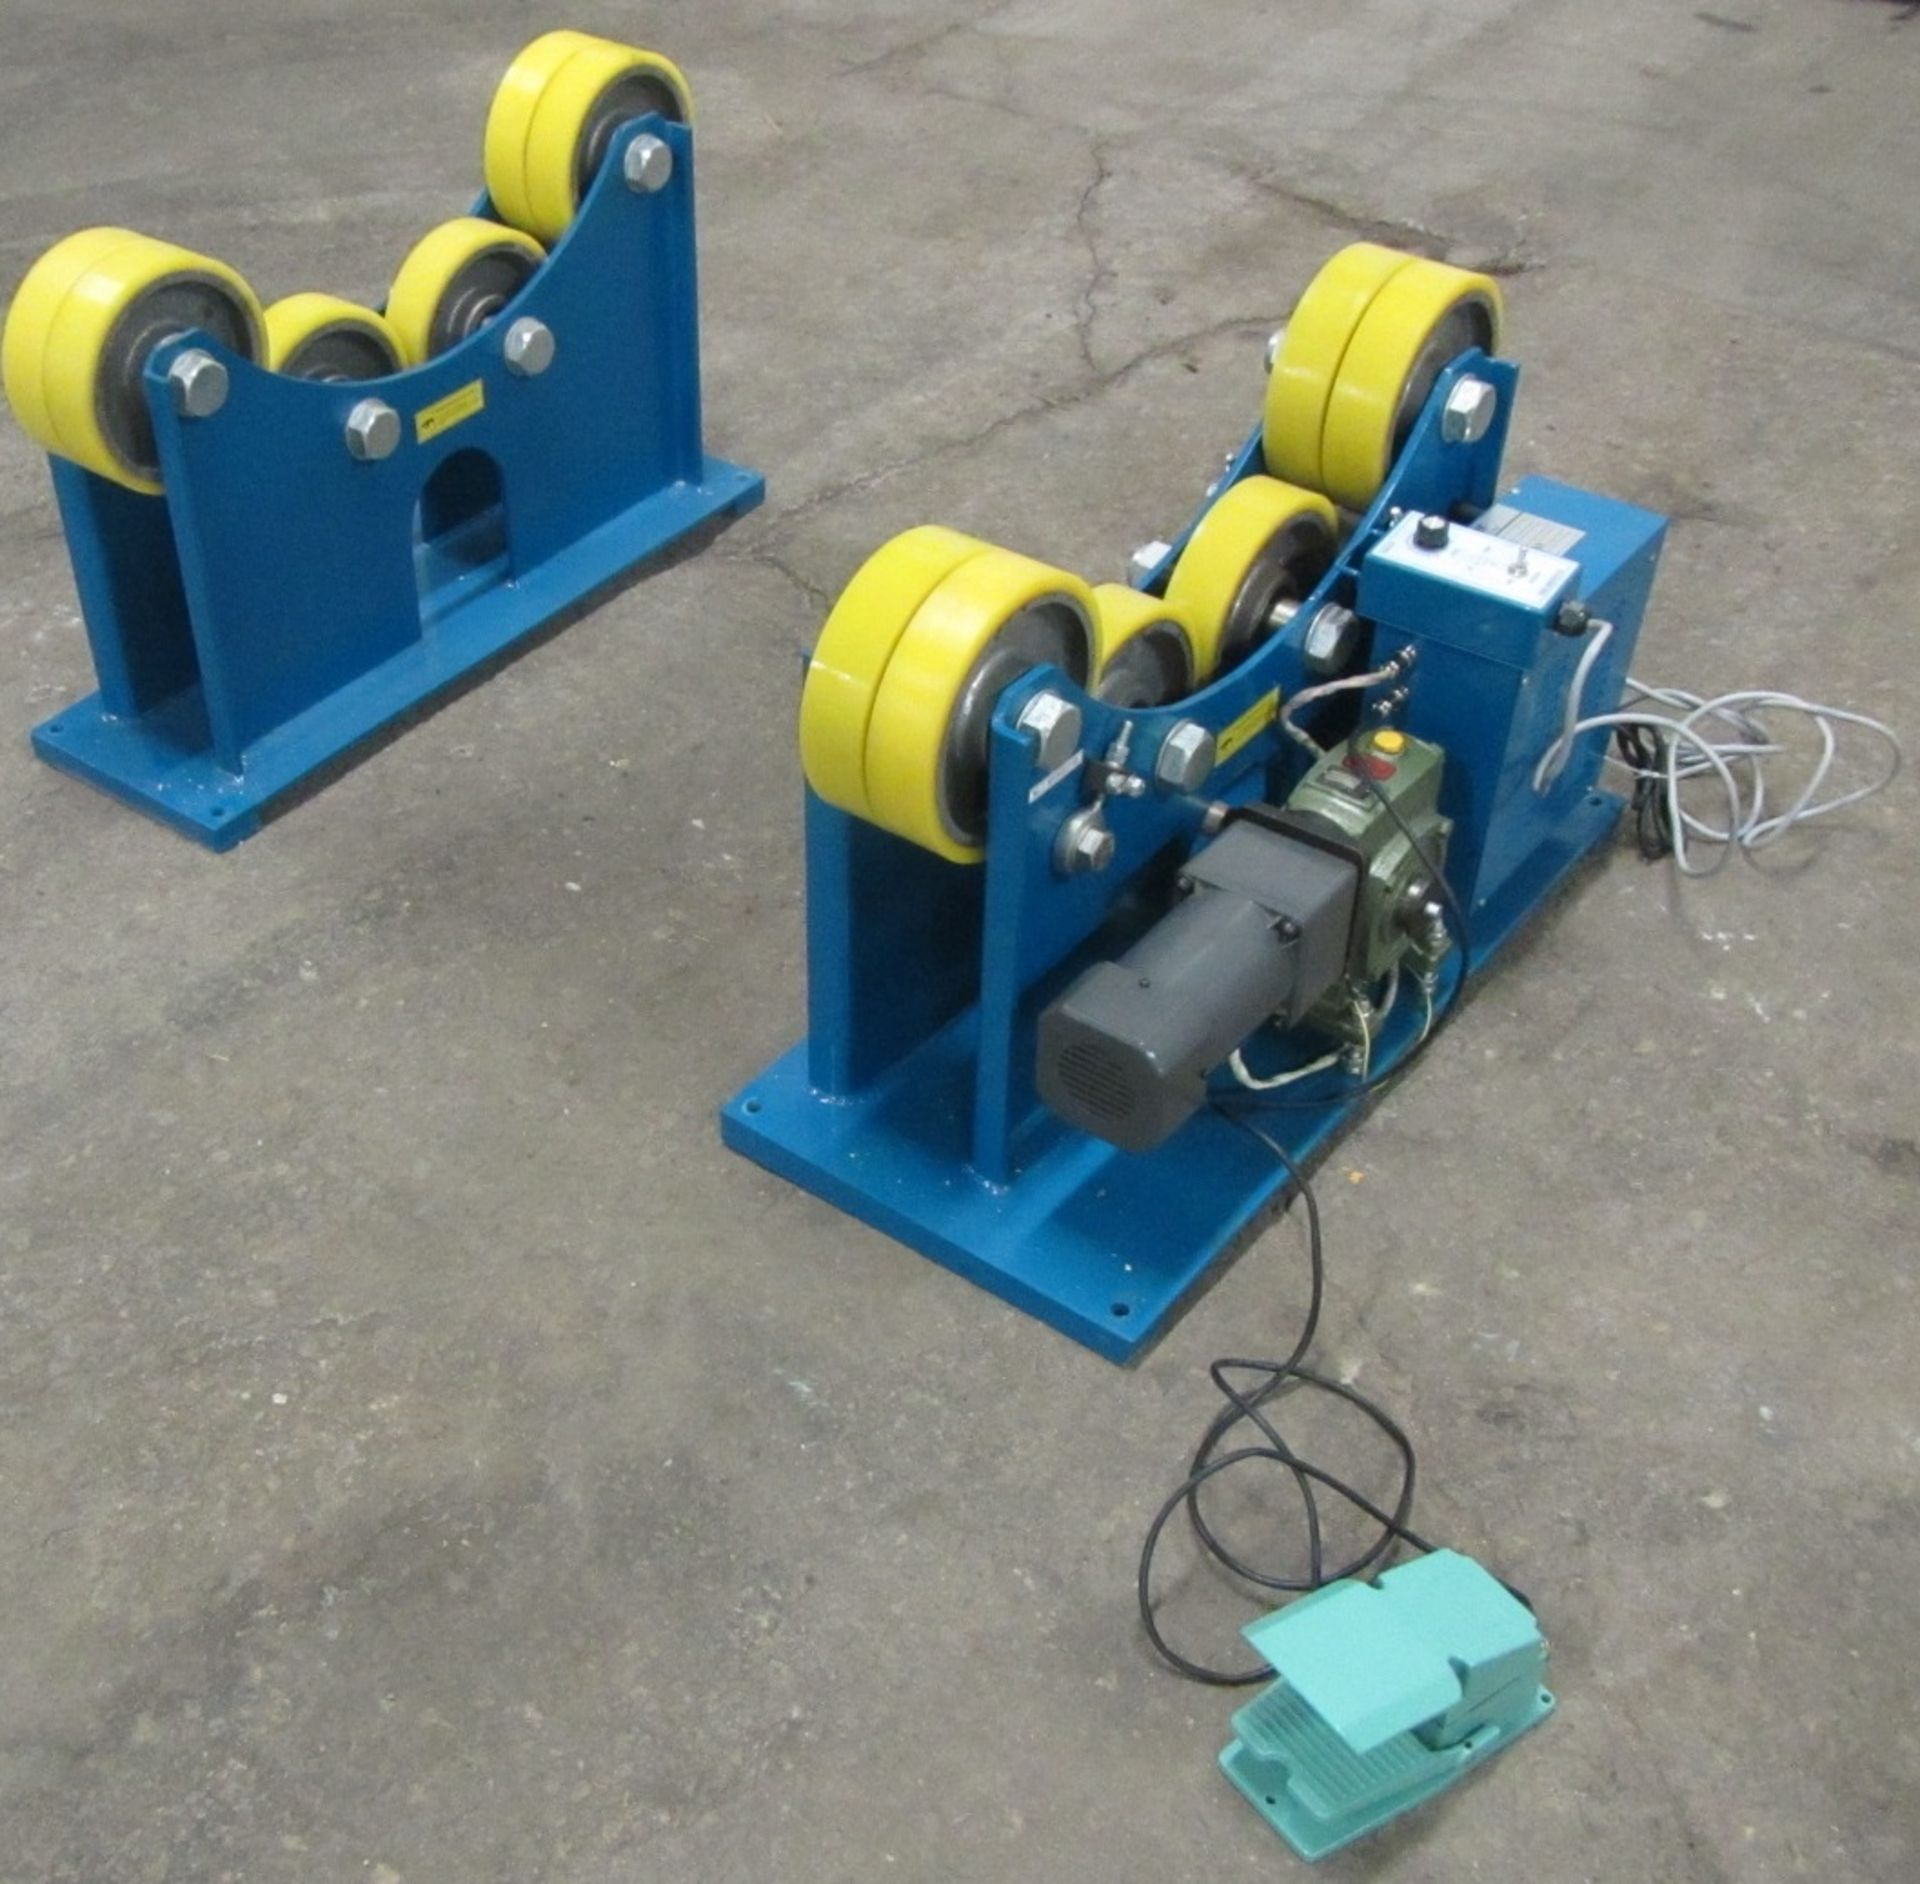 Verner model Power tank rolls - Powered turning roll and idler 7000lbs capacity with foot pedal